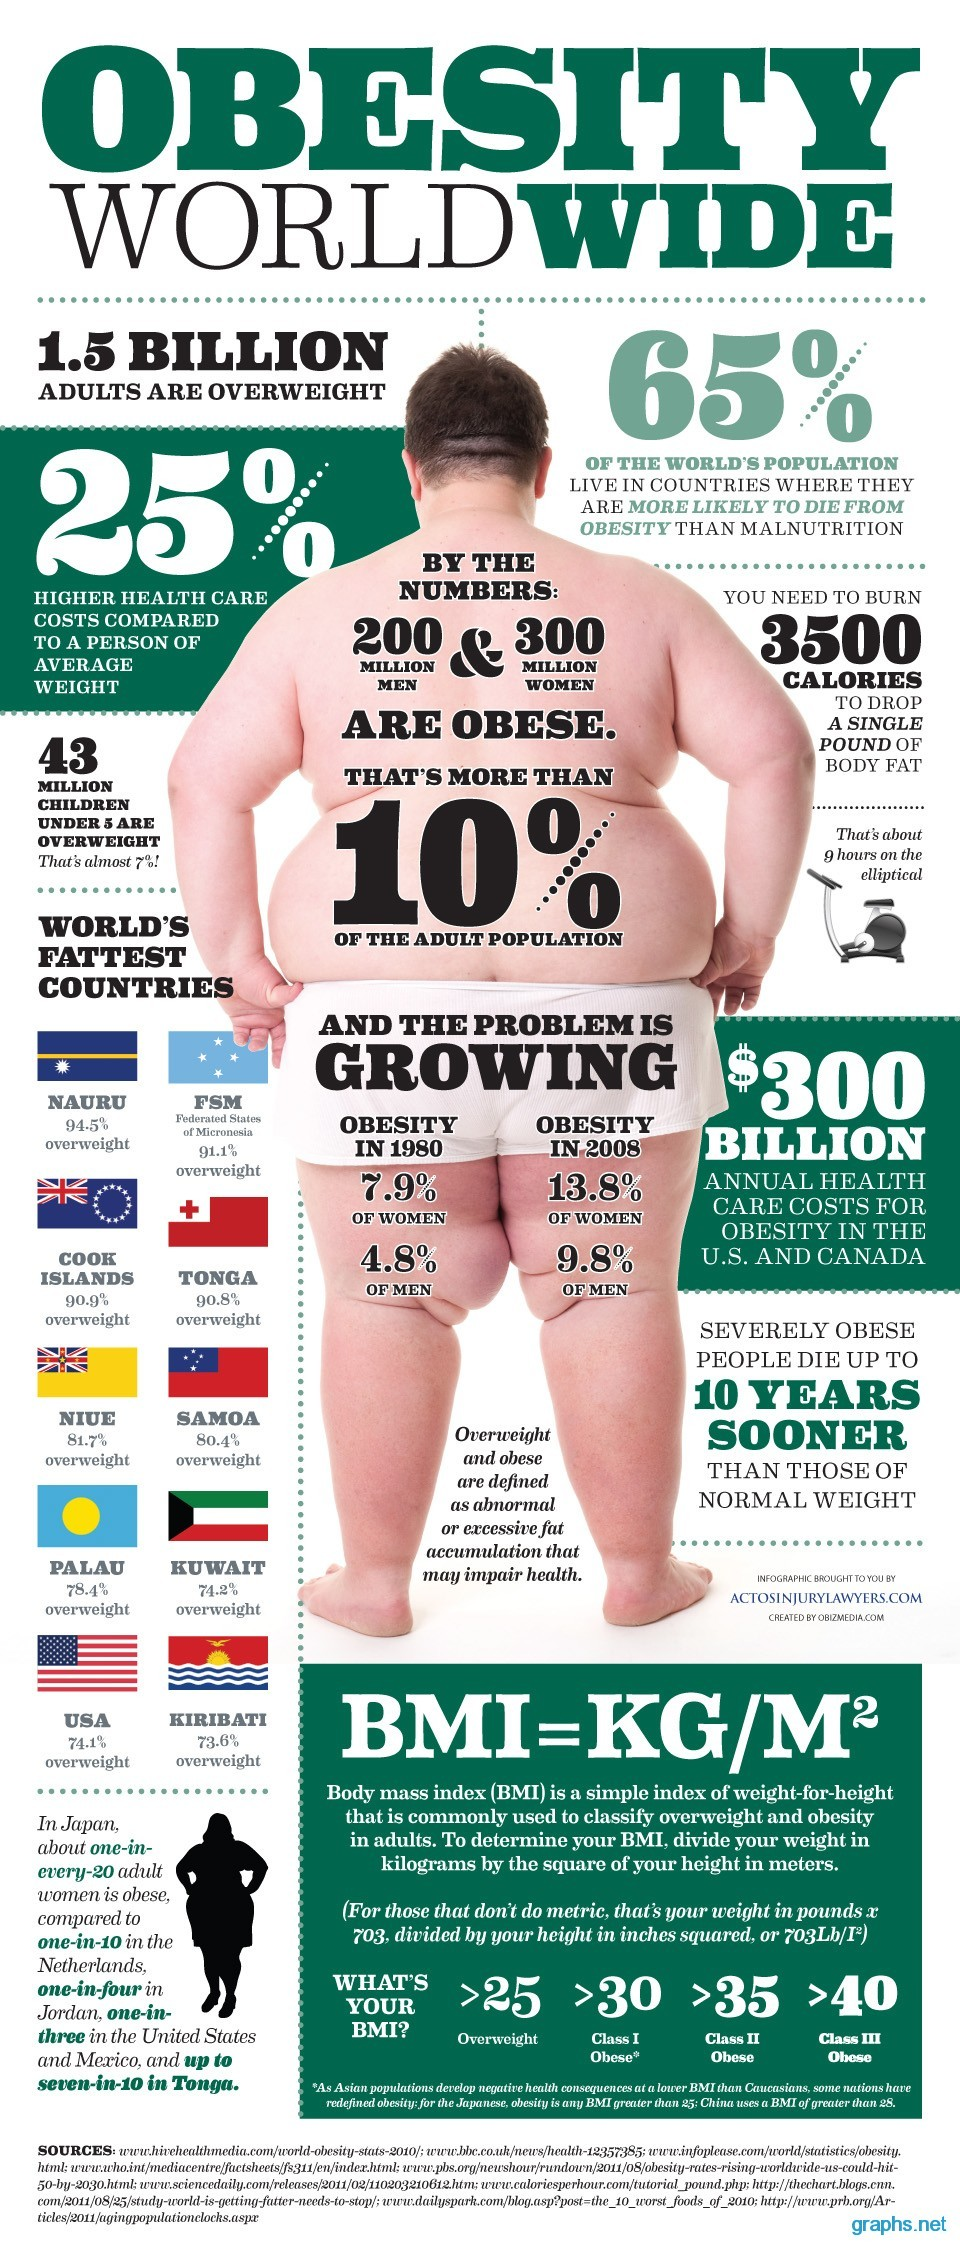 world wide obesity facts